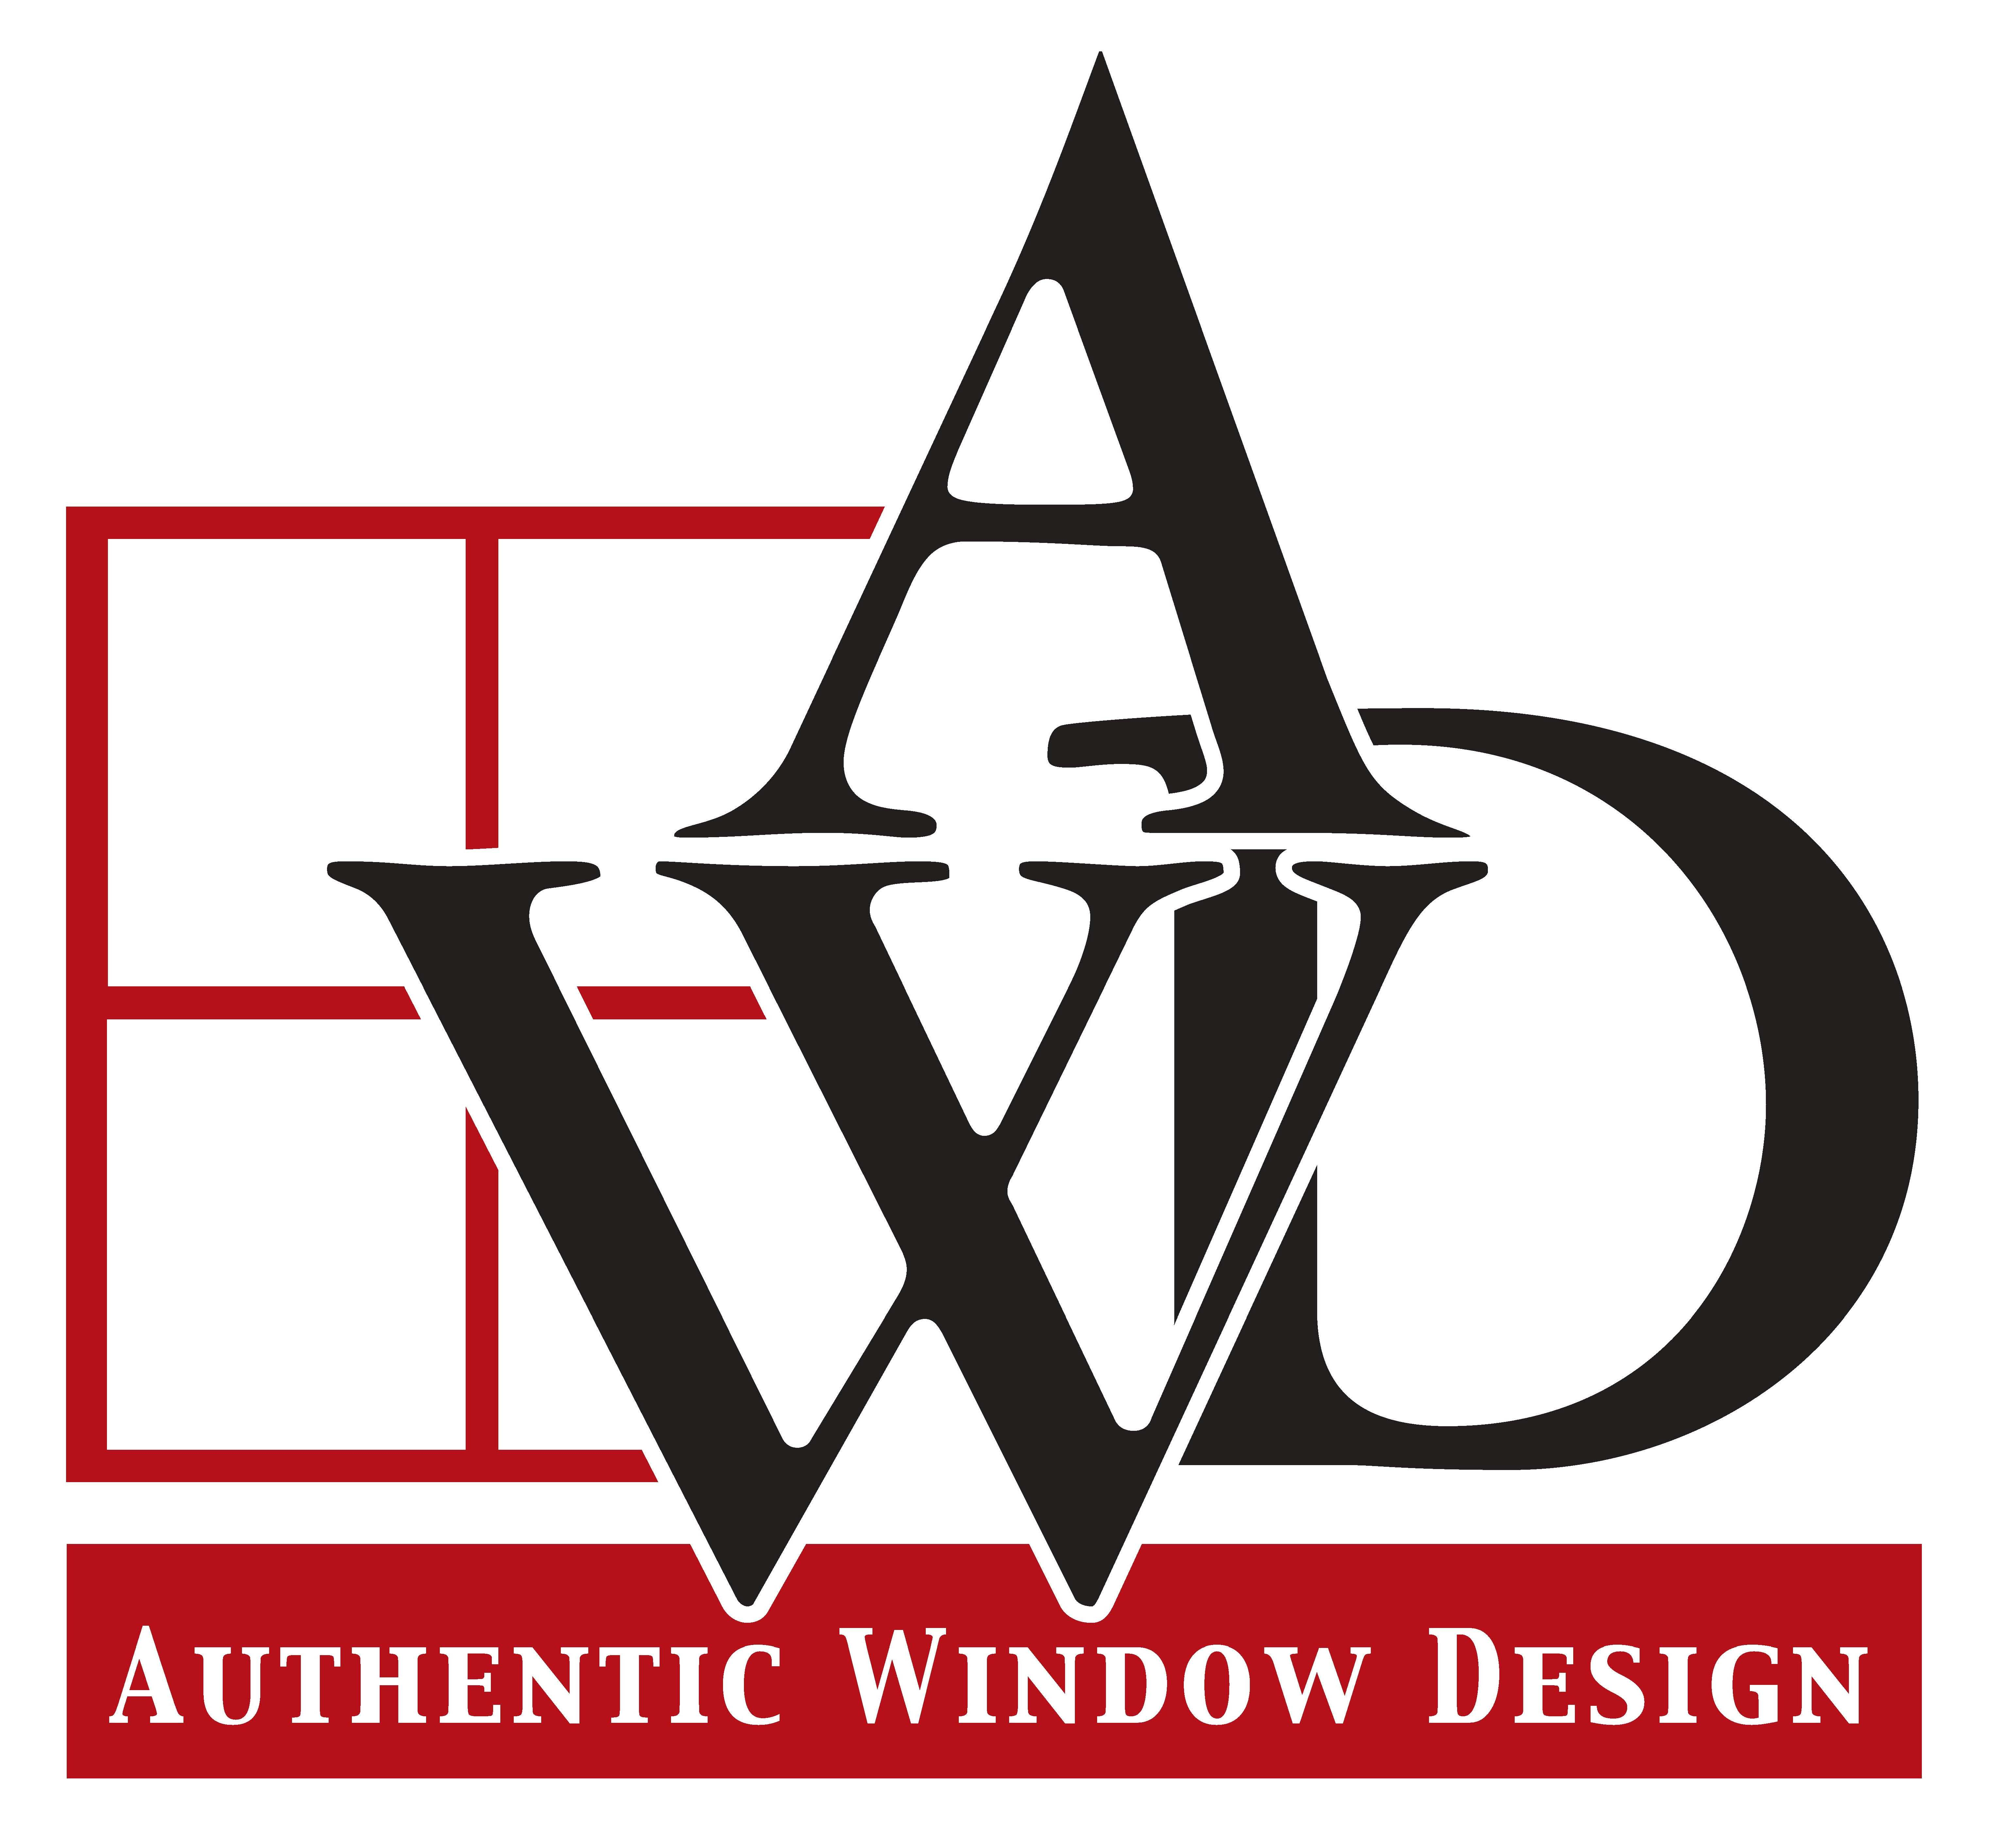 Authentic Window Design